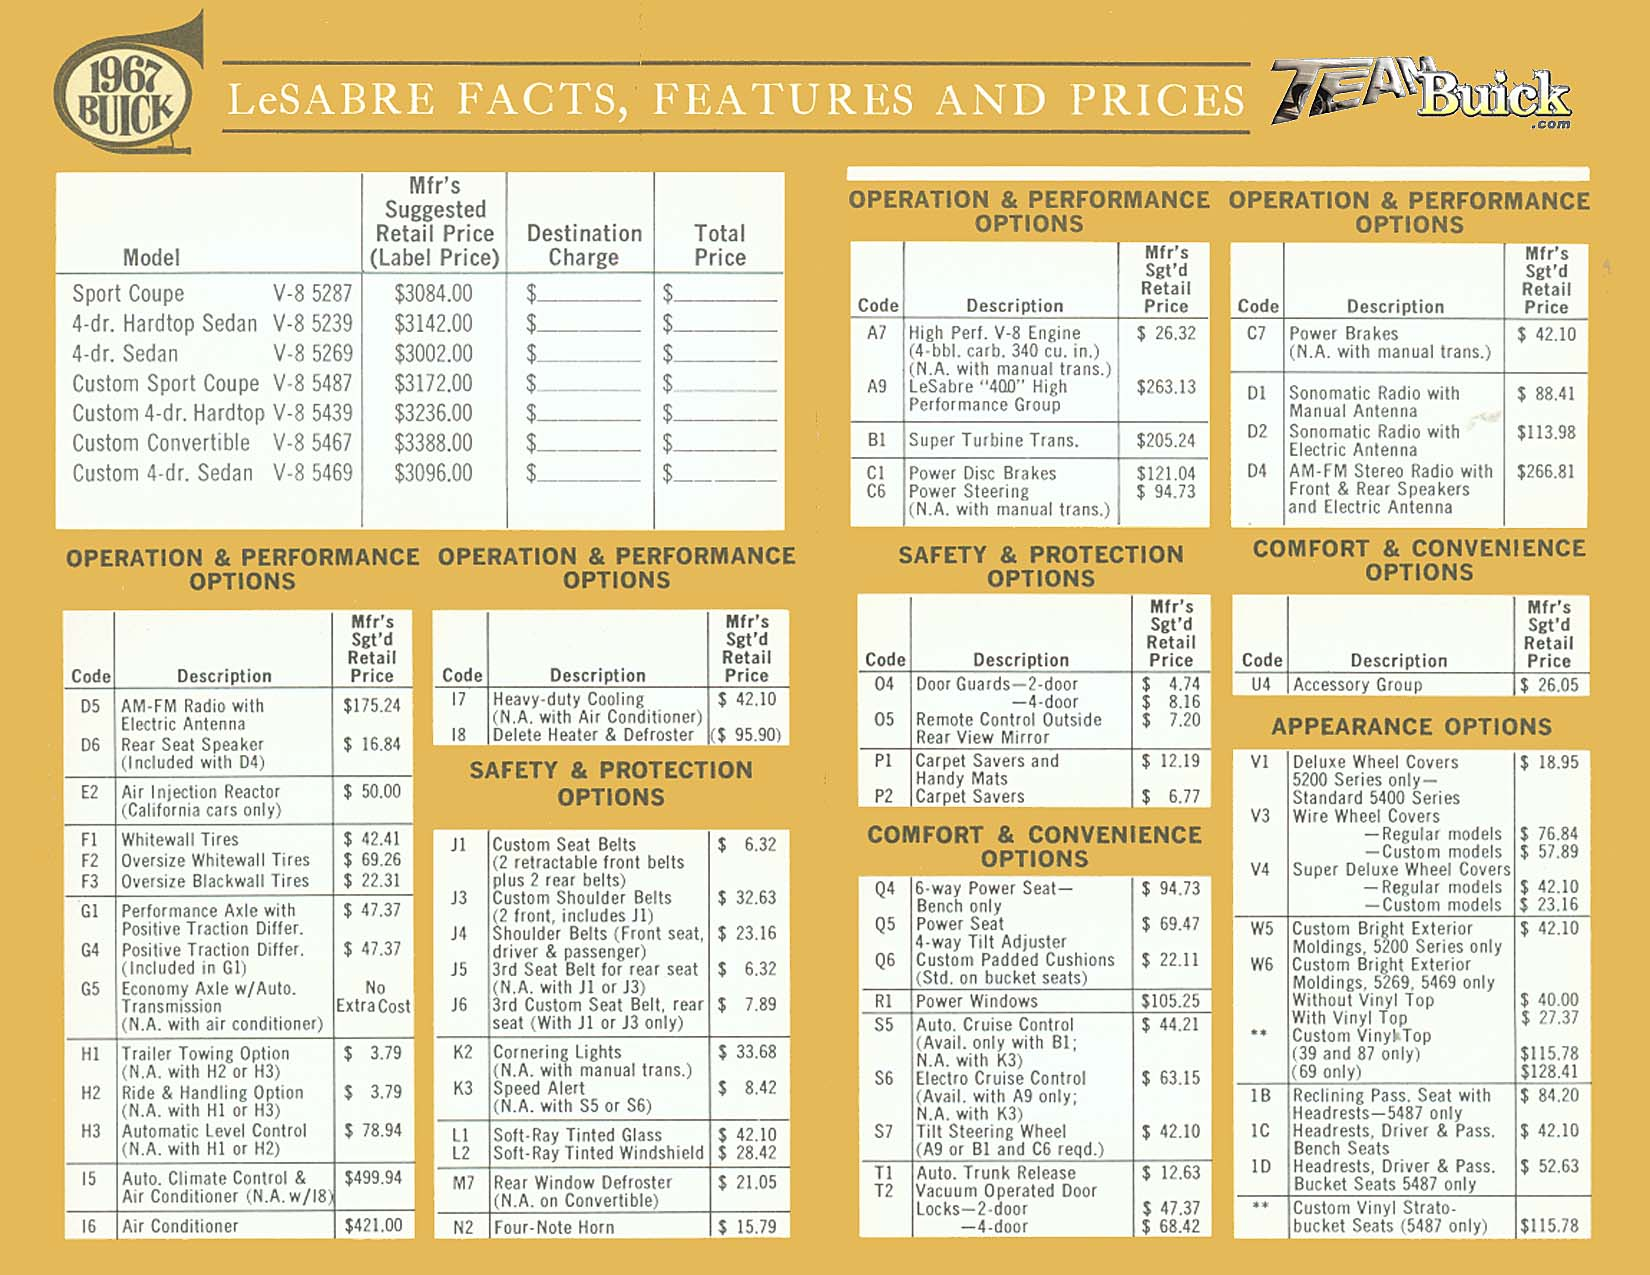 1967 Buick LeSabre Options and Codes